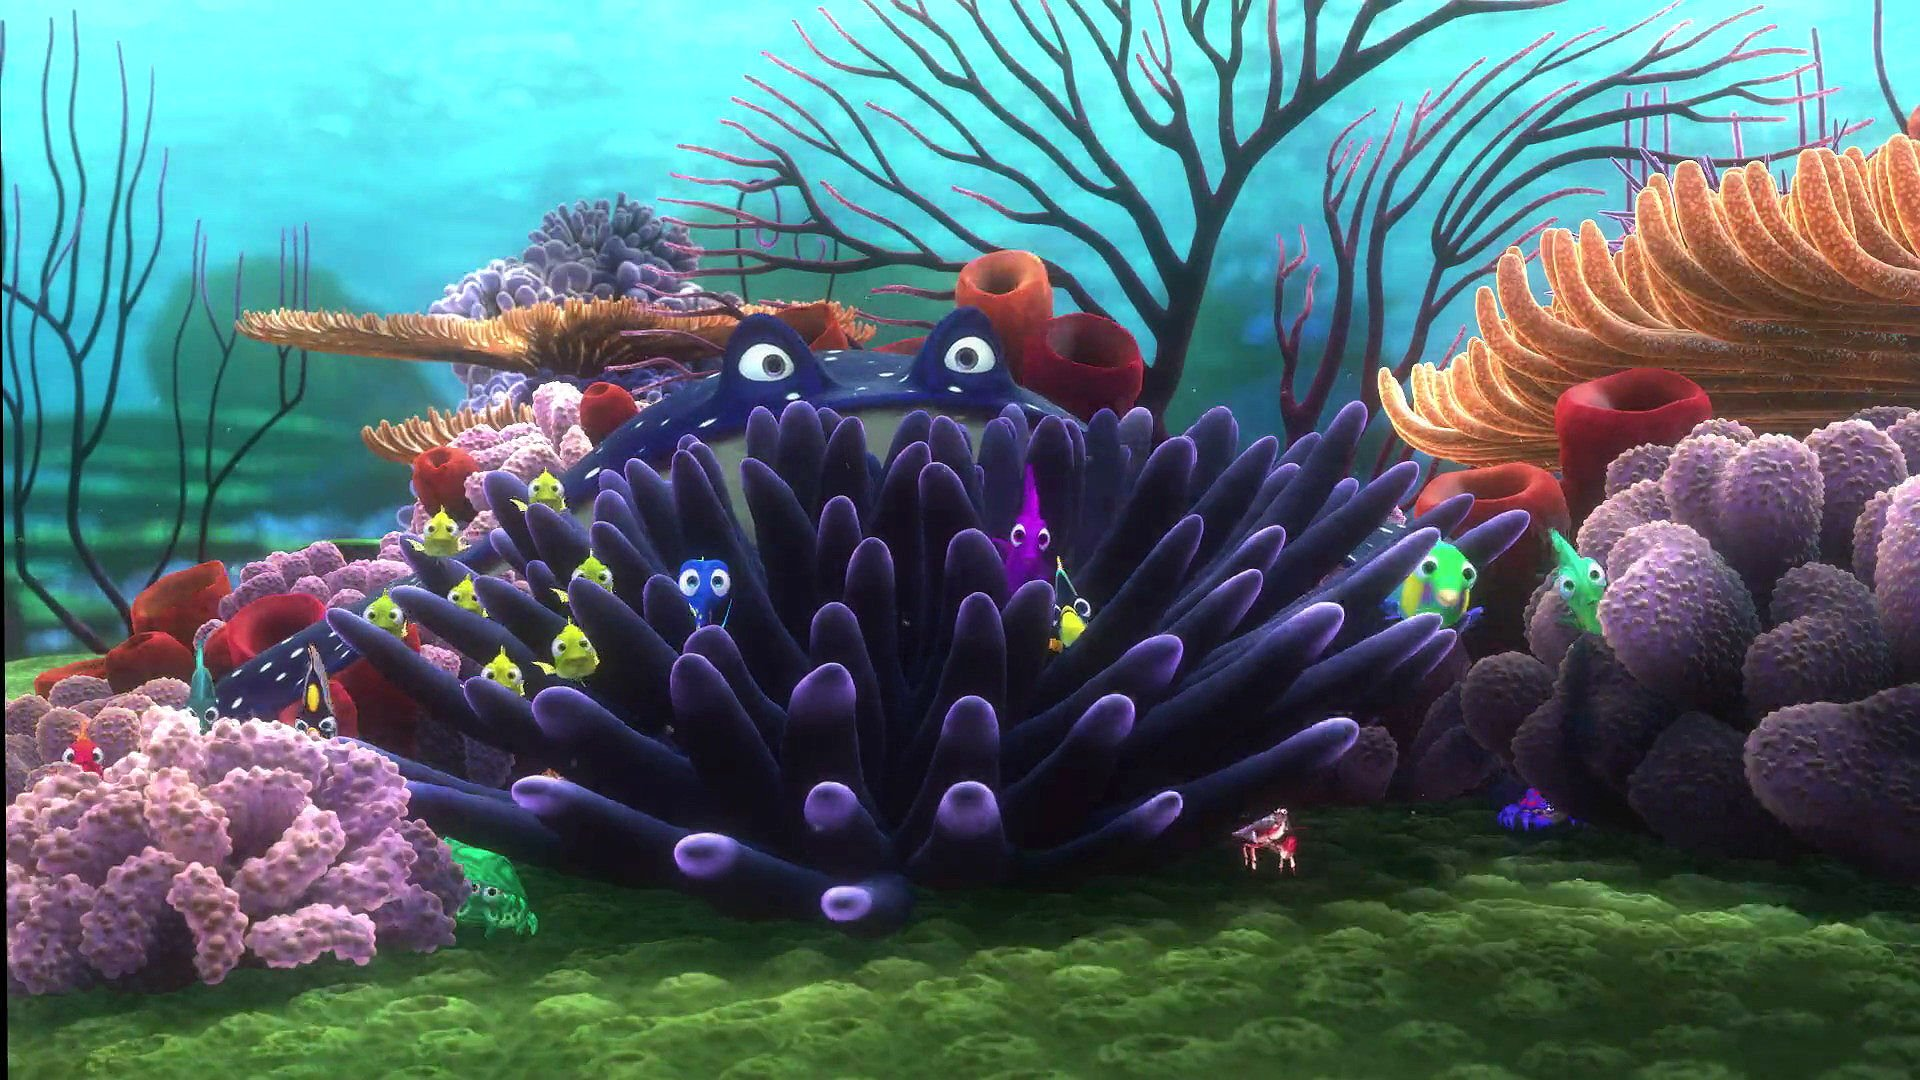 Sid 3d Name Wallpaper Finding Nemo Animation Underwater Sea Ocean Tropical Fish